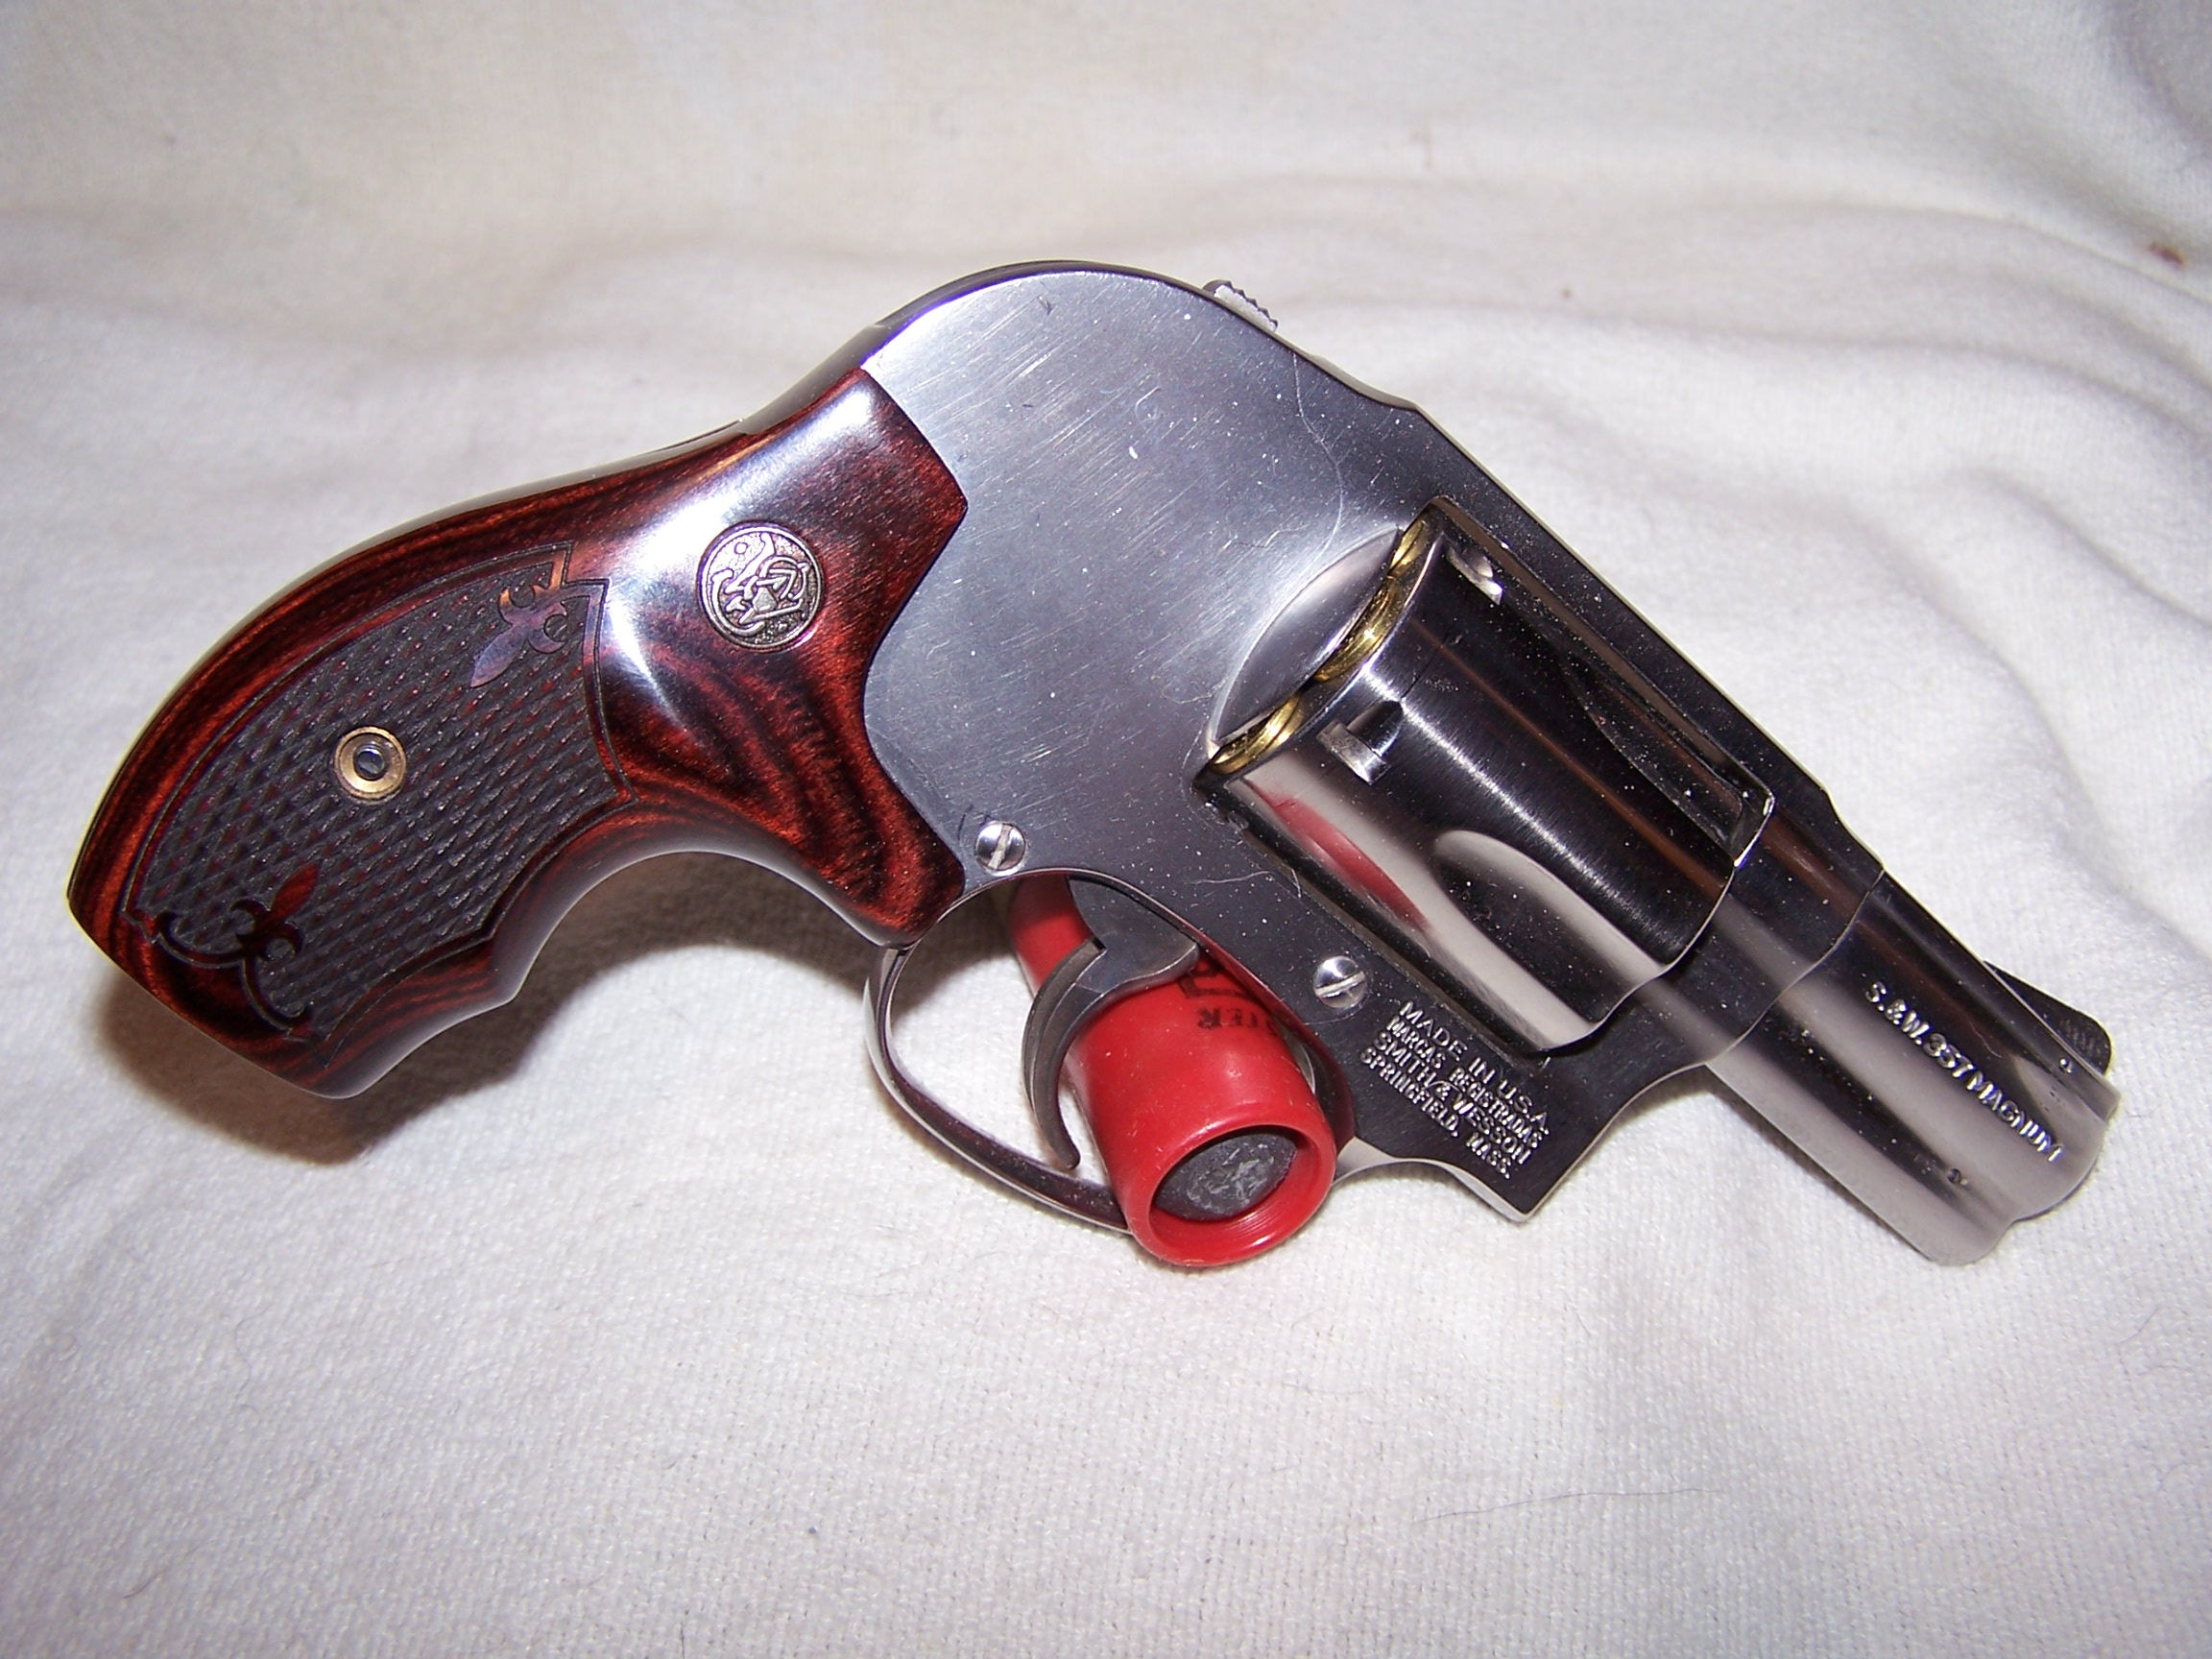 S&W Mdel 649-3 in 357 Magnum